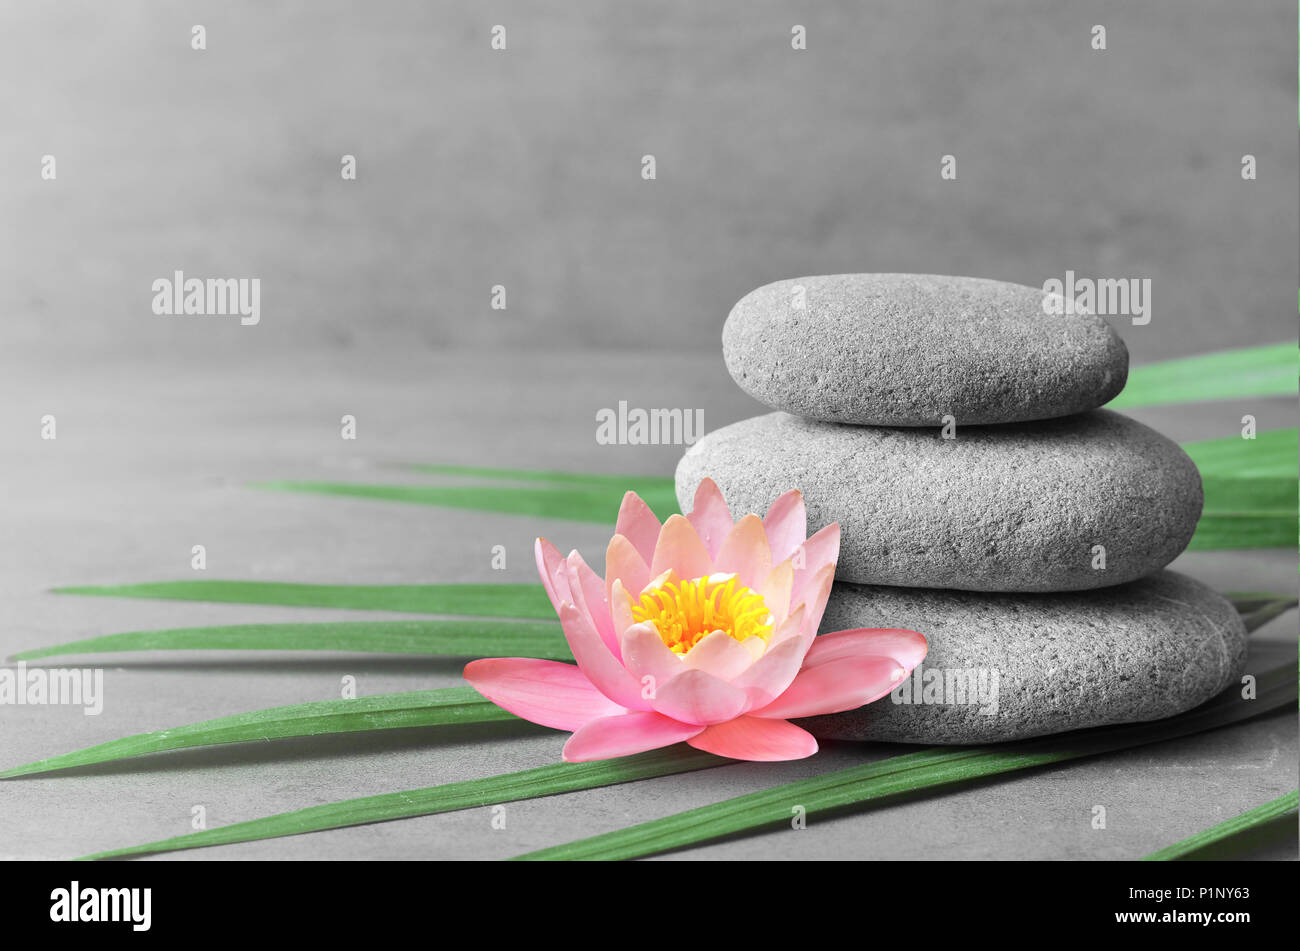 Stones balance pink flower lotus and green palm leaf zen and spa stones balance pink flower lotus and green palm leaf zen and spa concept izmirmasajfo